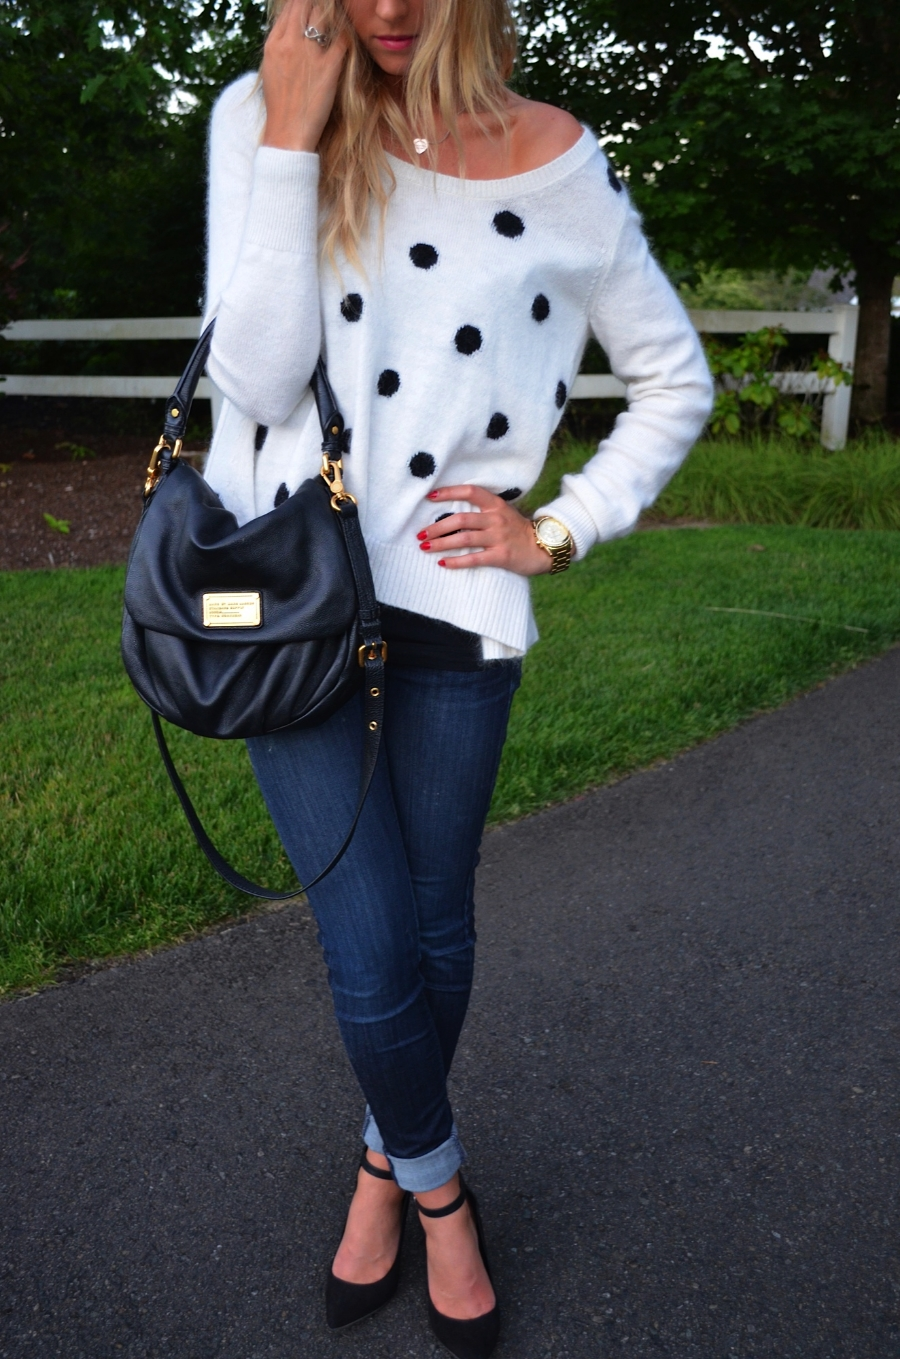 Sweater // Old, but I love this one! Cute & affordable :) here Jeans // Hudson via Nordstrom Shoes // Old, but similar ones here Handbag // Marc by Marc Jacobs Watch // Michael Kors